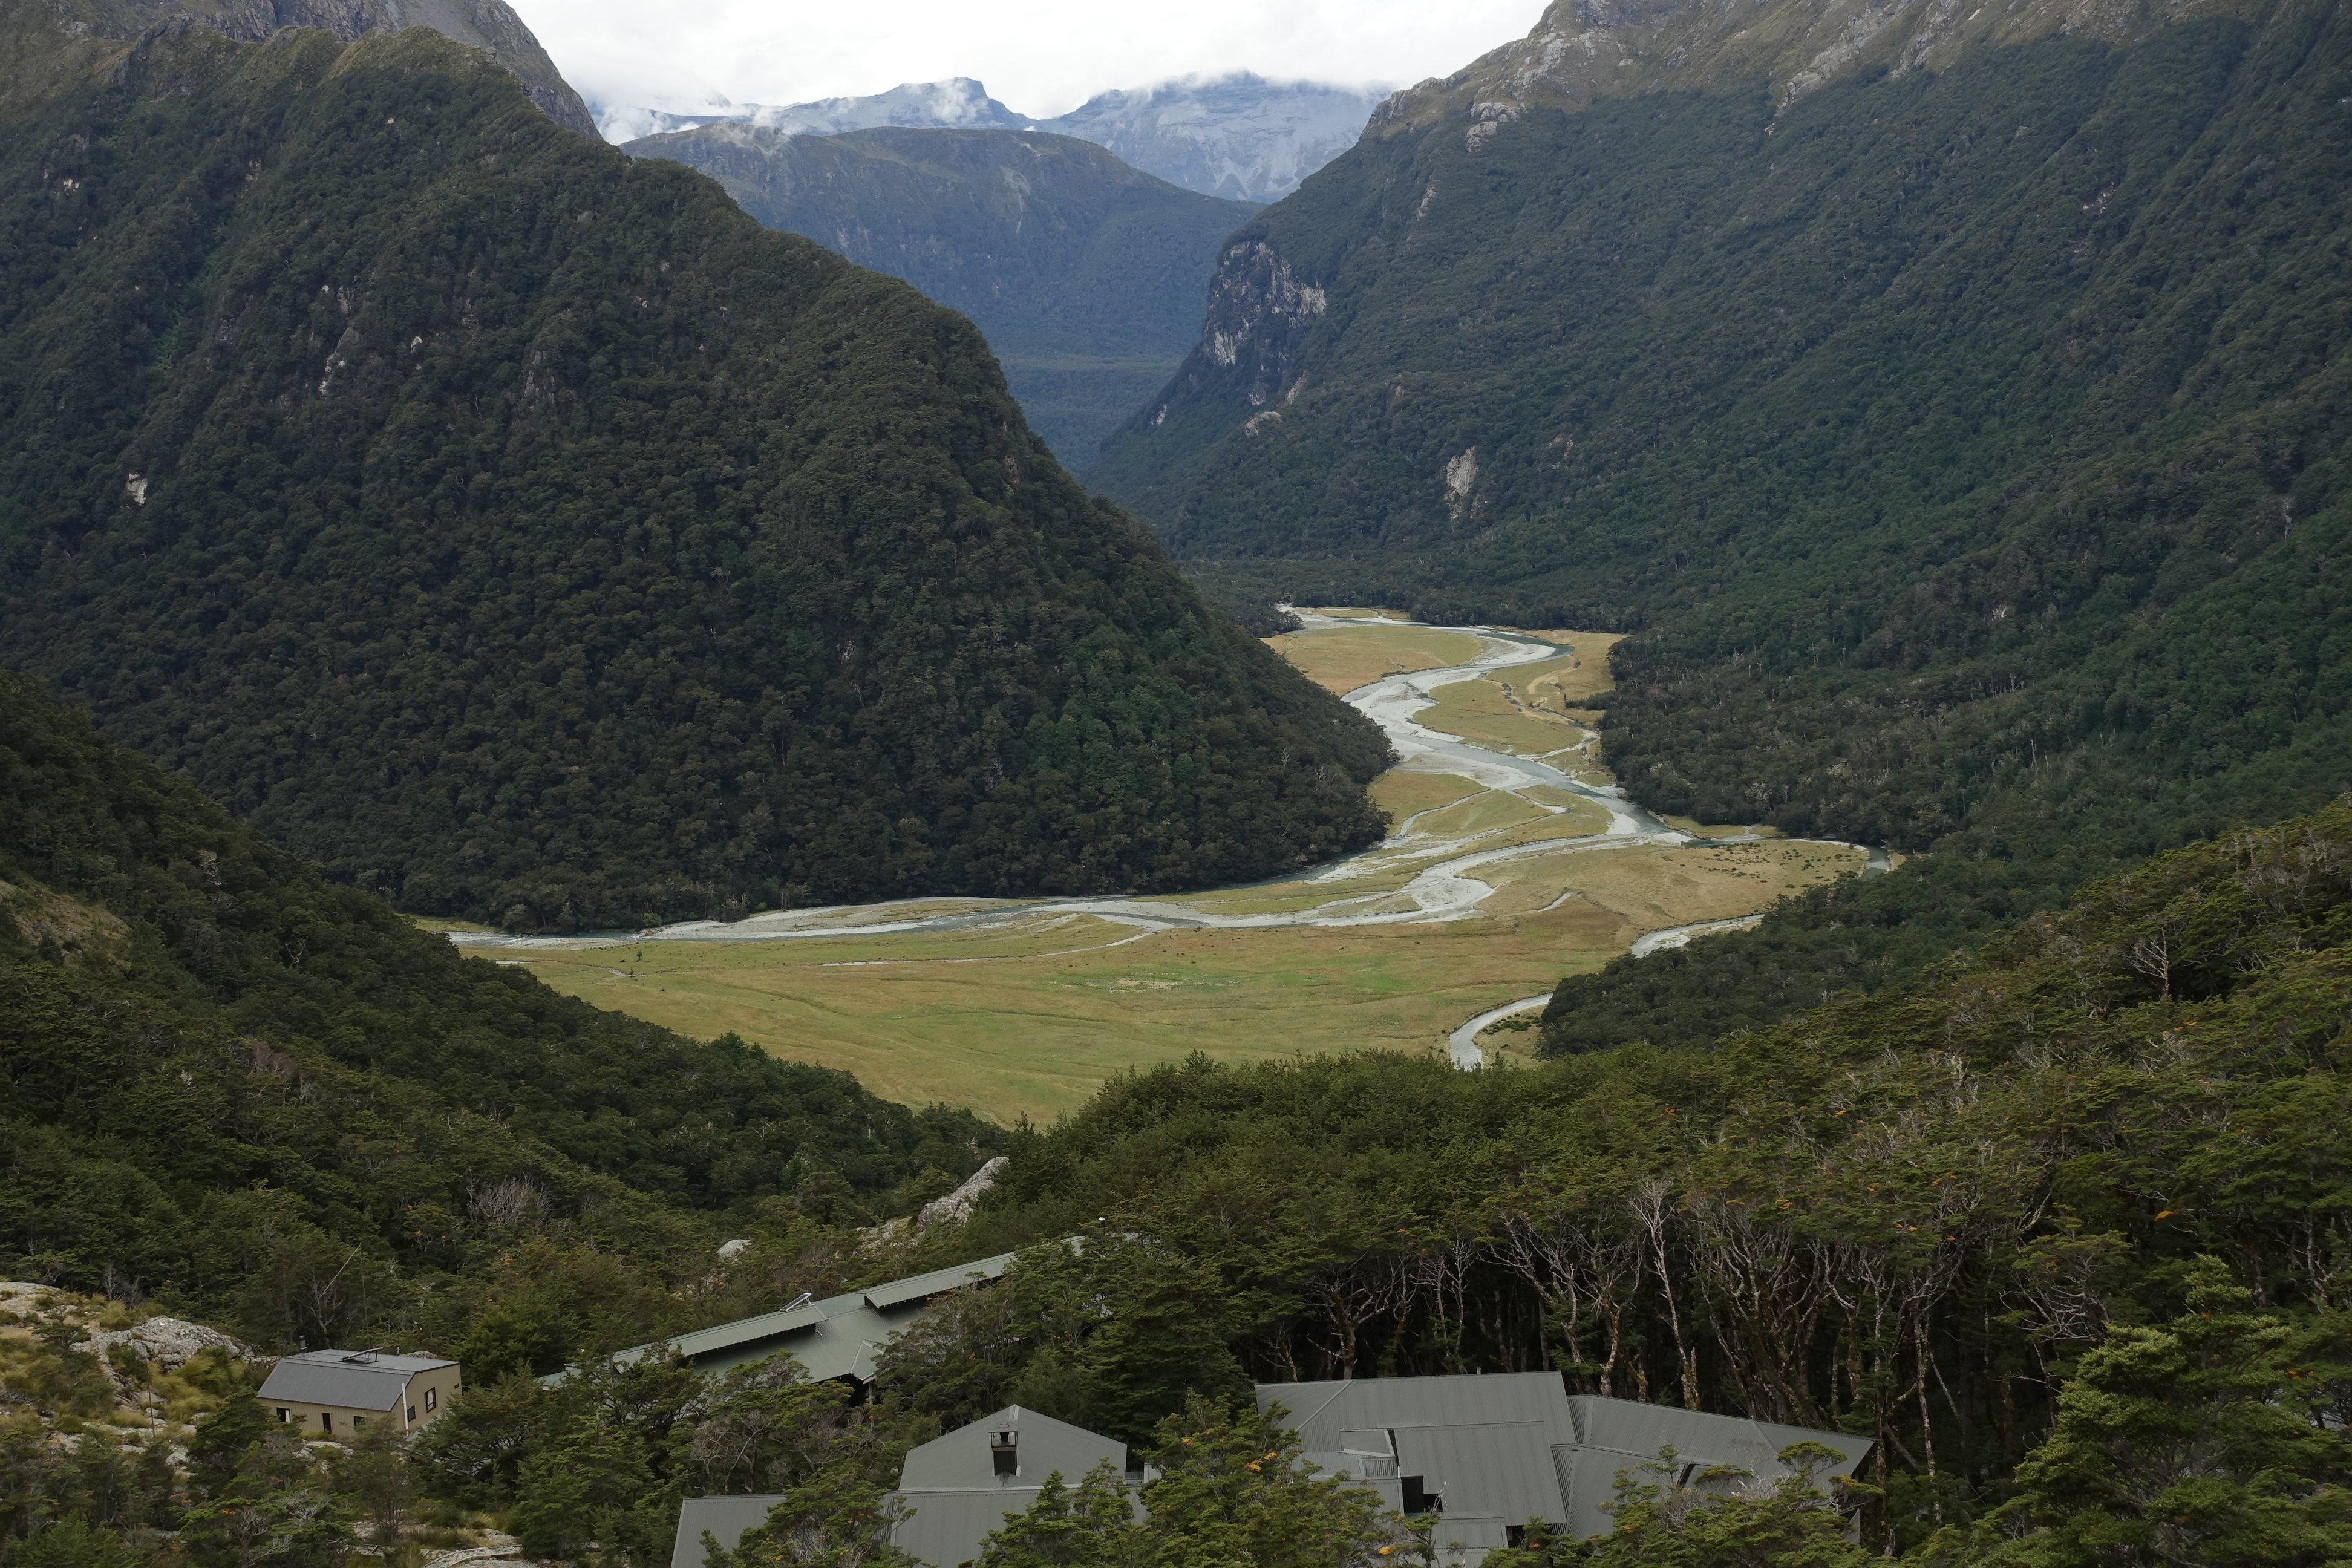 Routeburn Valley with Huts in foreground